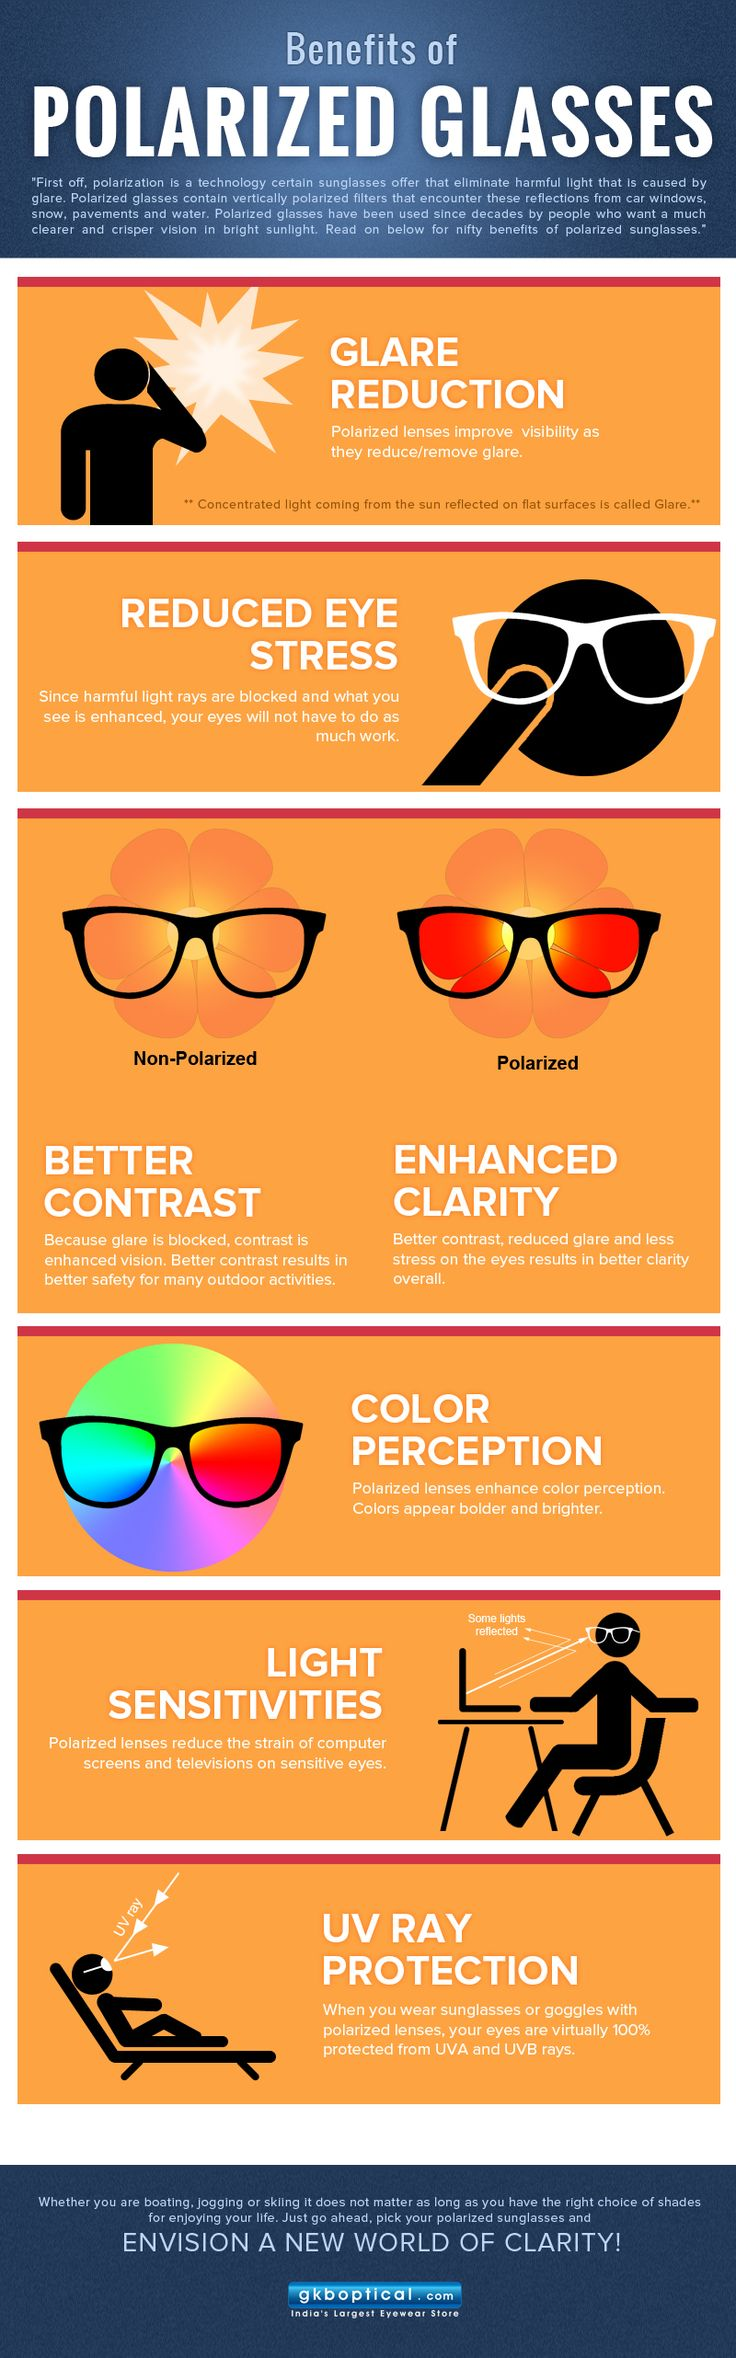 polarized glasses  17 Best ideas about Polarized Glasses on Pinterest